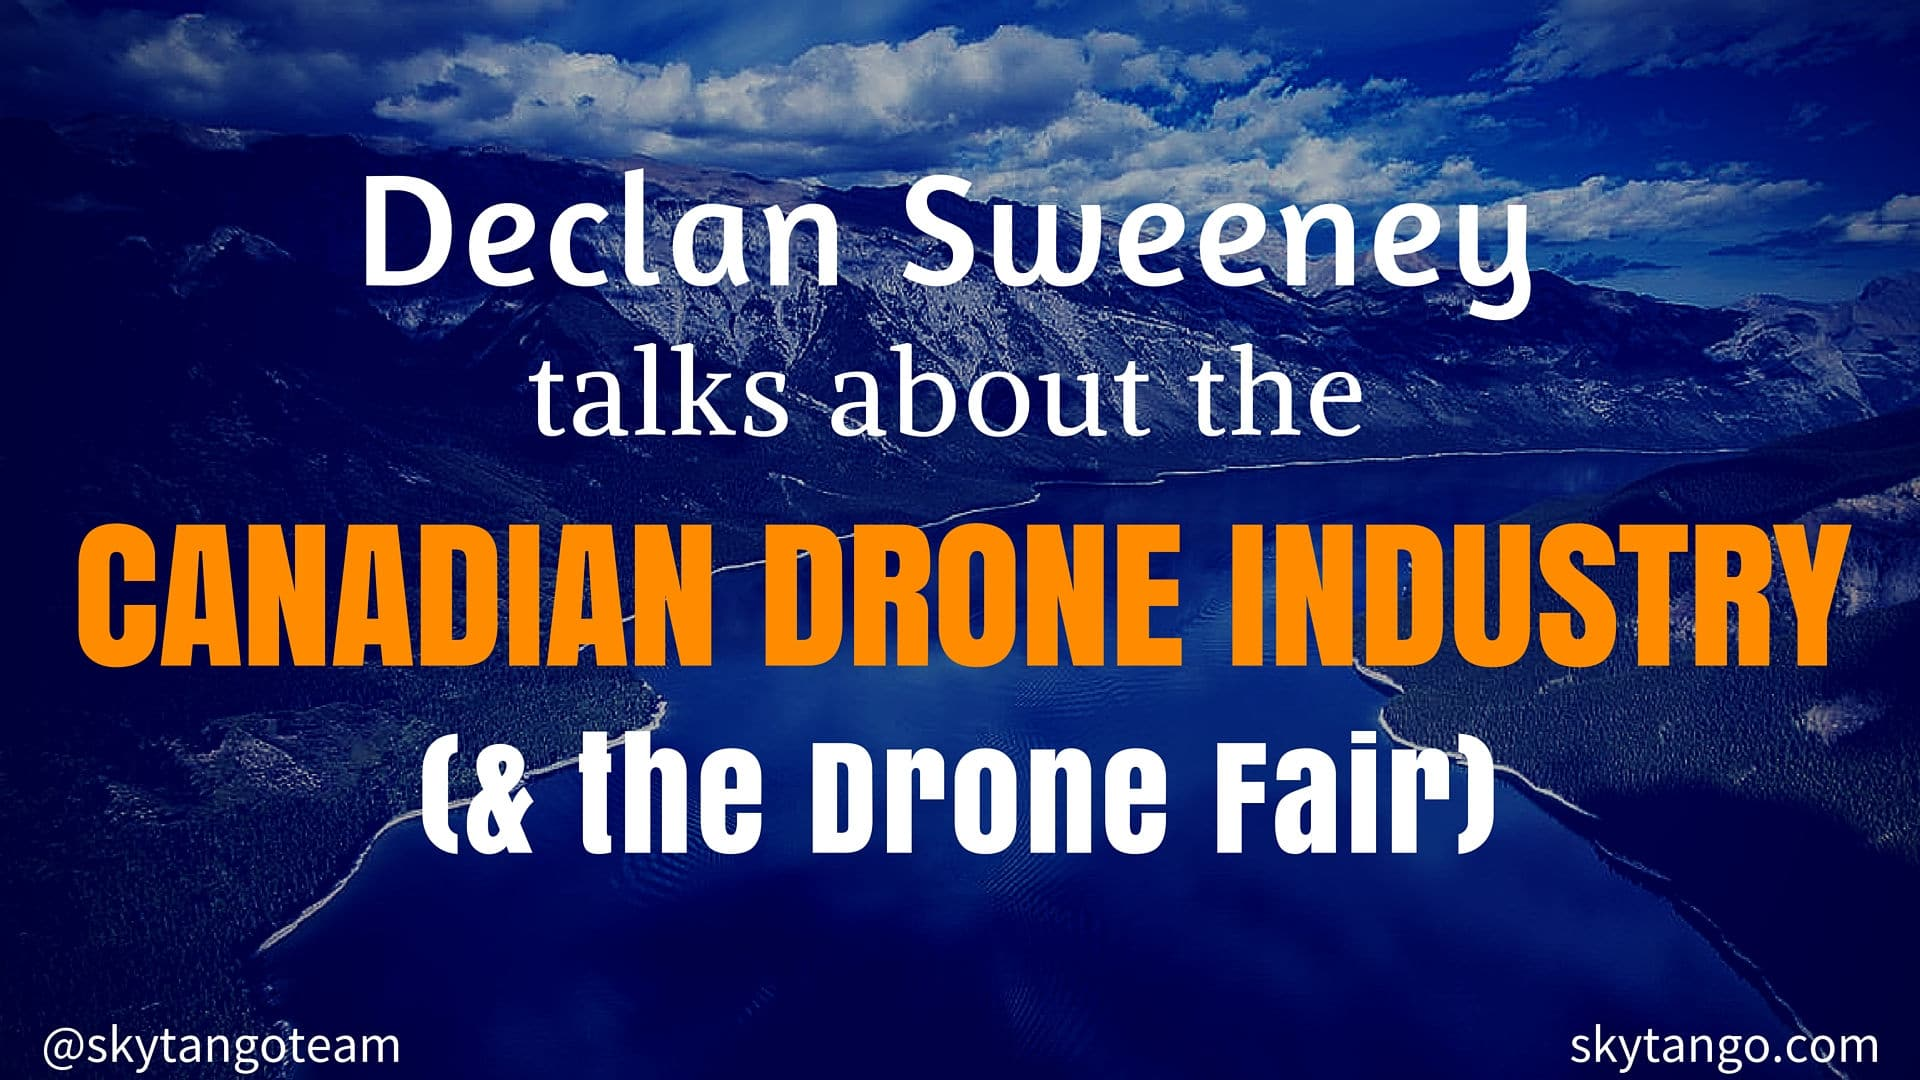 Declan Sweeney Talks About the Canadian Drone Industry & the Drone Fair